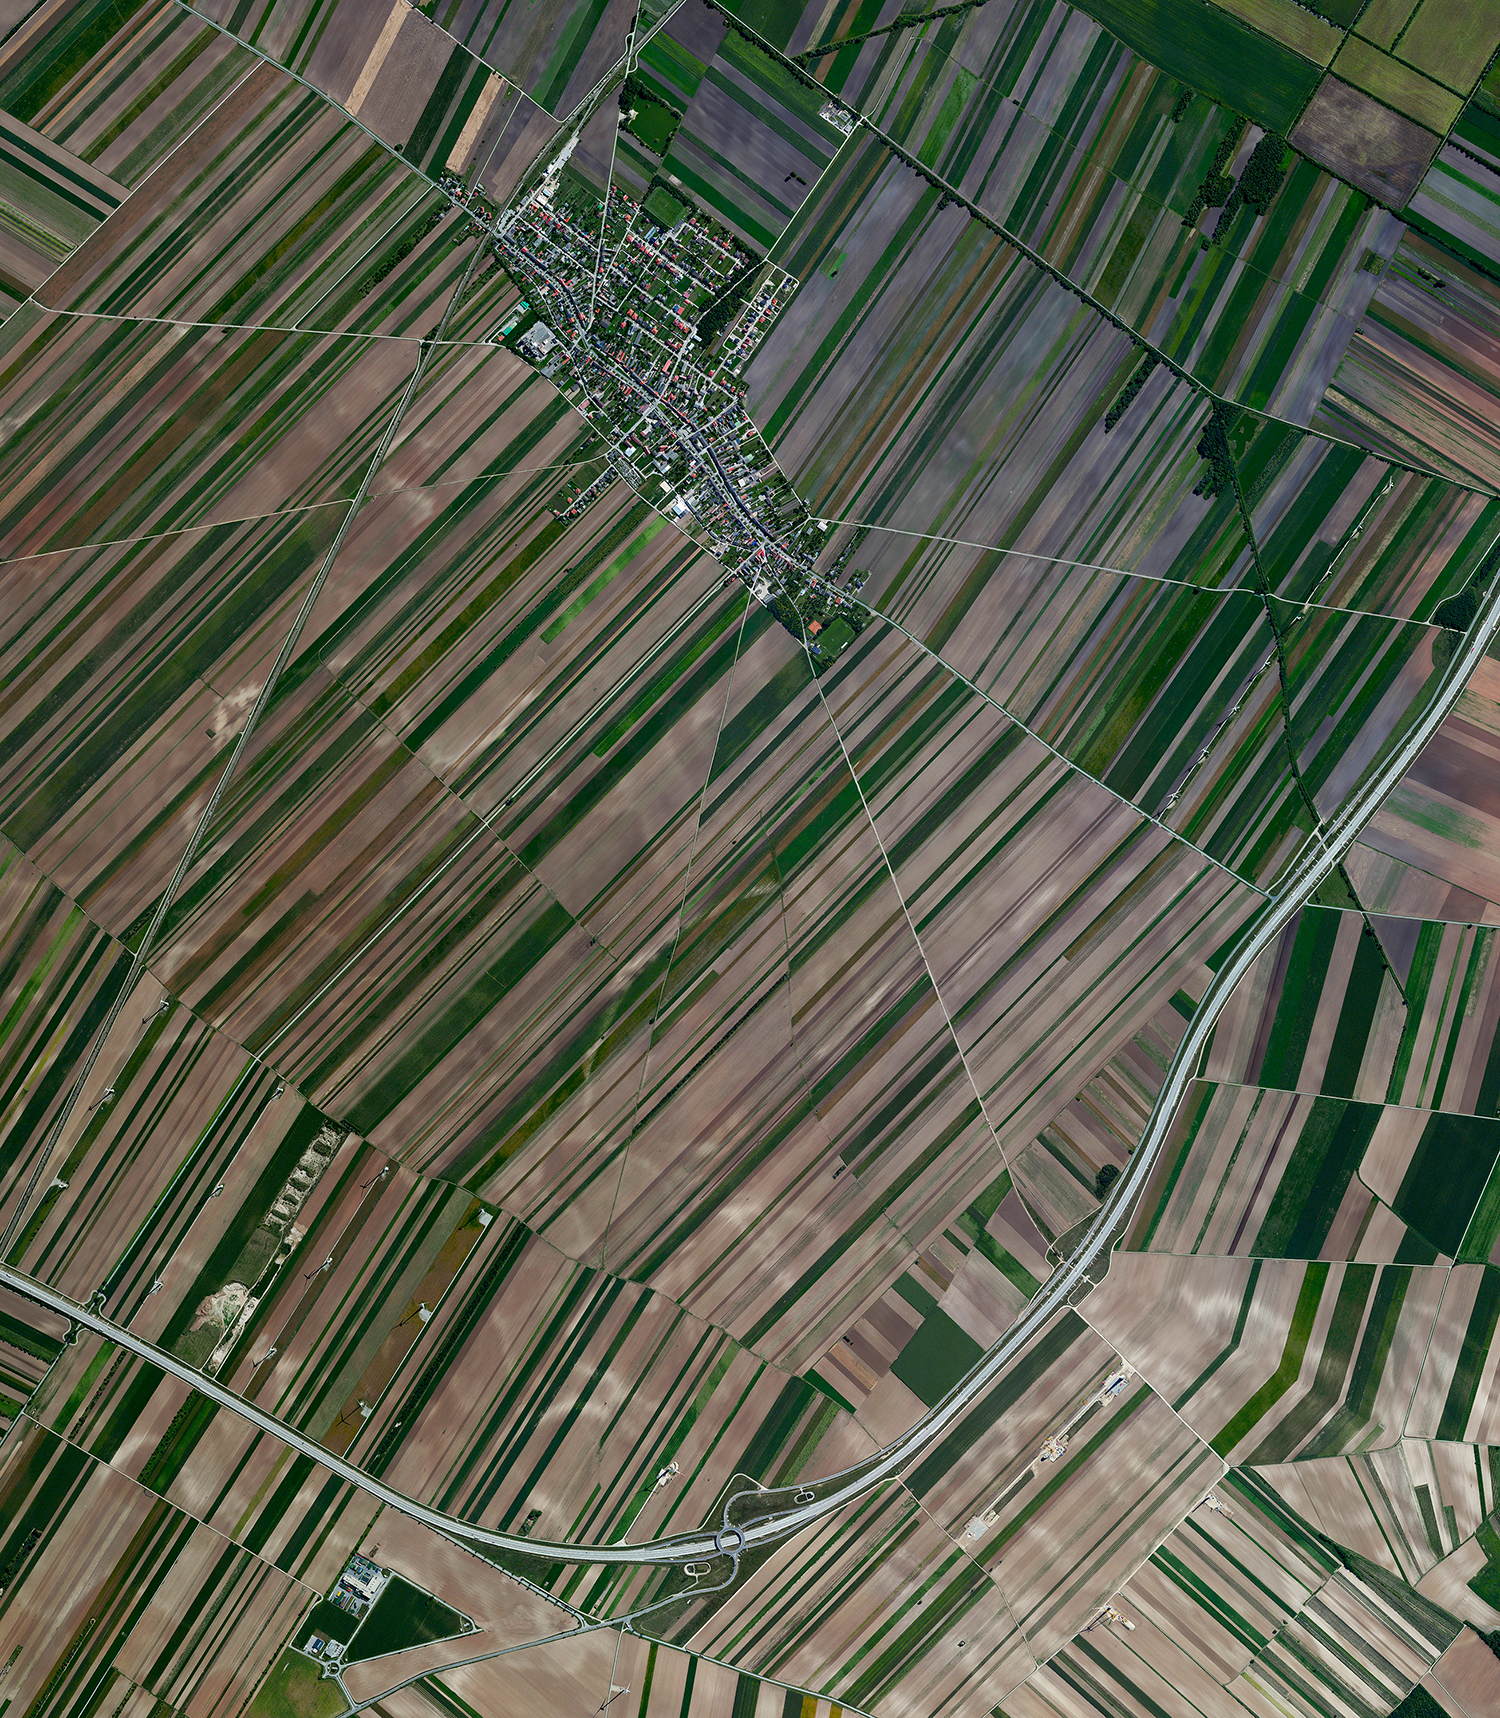 6/7/2017  Pama, Austria  48.047364, 17.034543  Agricultural development is seen around the village of Pama, Austria. The area has a population of roughly 1,100 and primarily produces wheat, rye, oats, and barley.